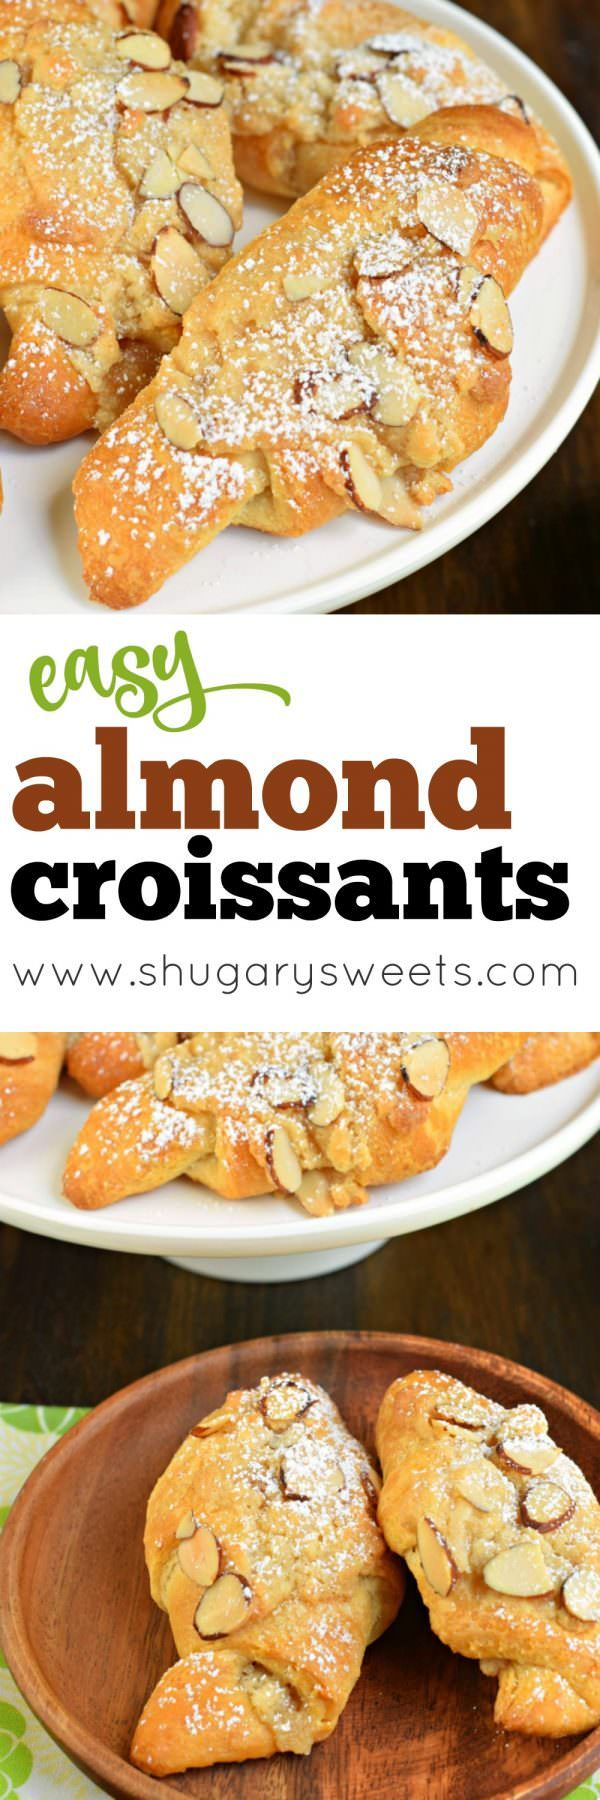 These Easy Almond Croissants are flaky and buttery and packed with a sweet almond filling and topping! You'll love how easy they are to make with crescent rolls, too!